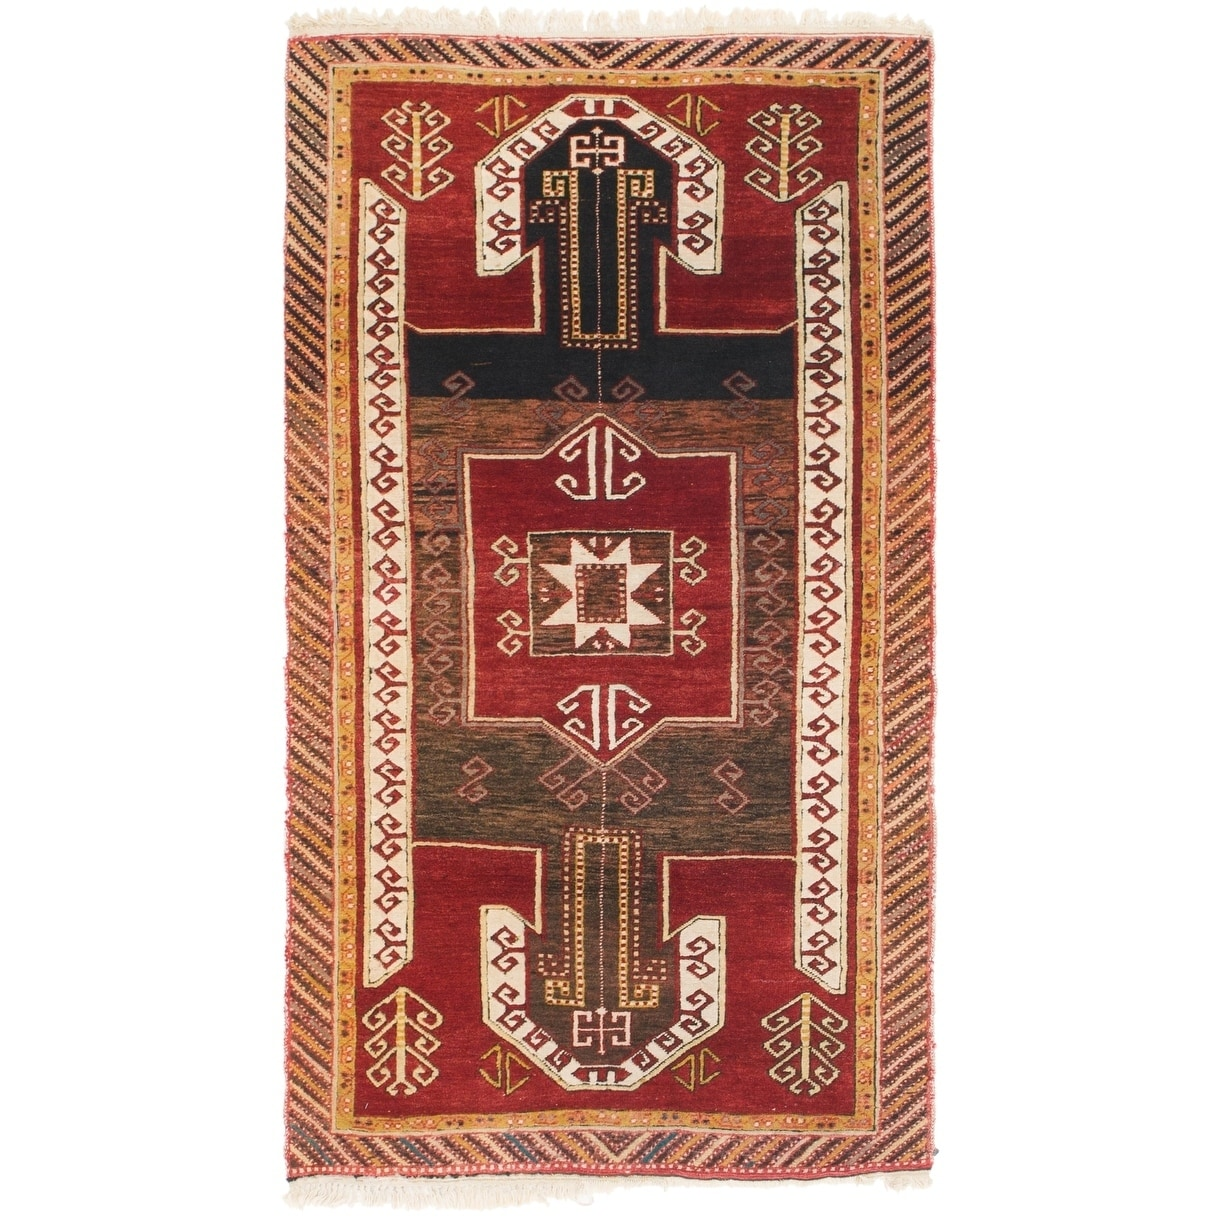 Hand Knotted Kars Antique Wool Area Rug - 3 5 x 6 4 (Red - 3 5 x 6 4)